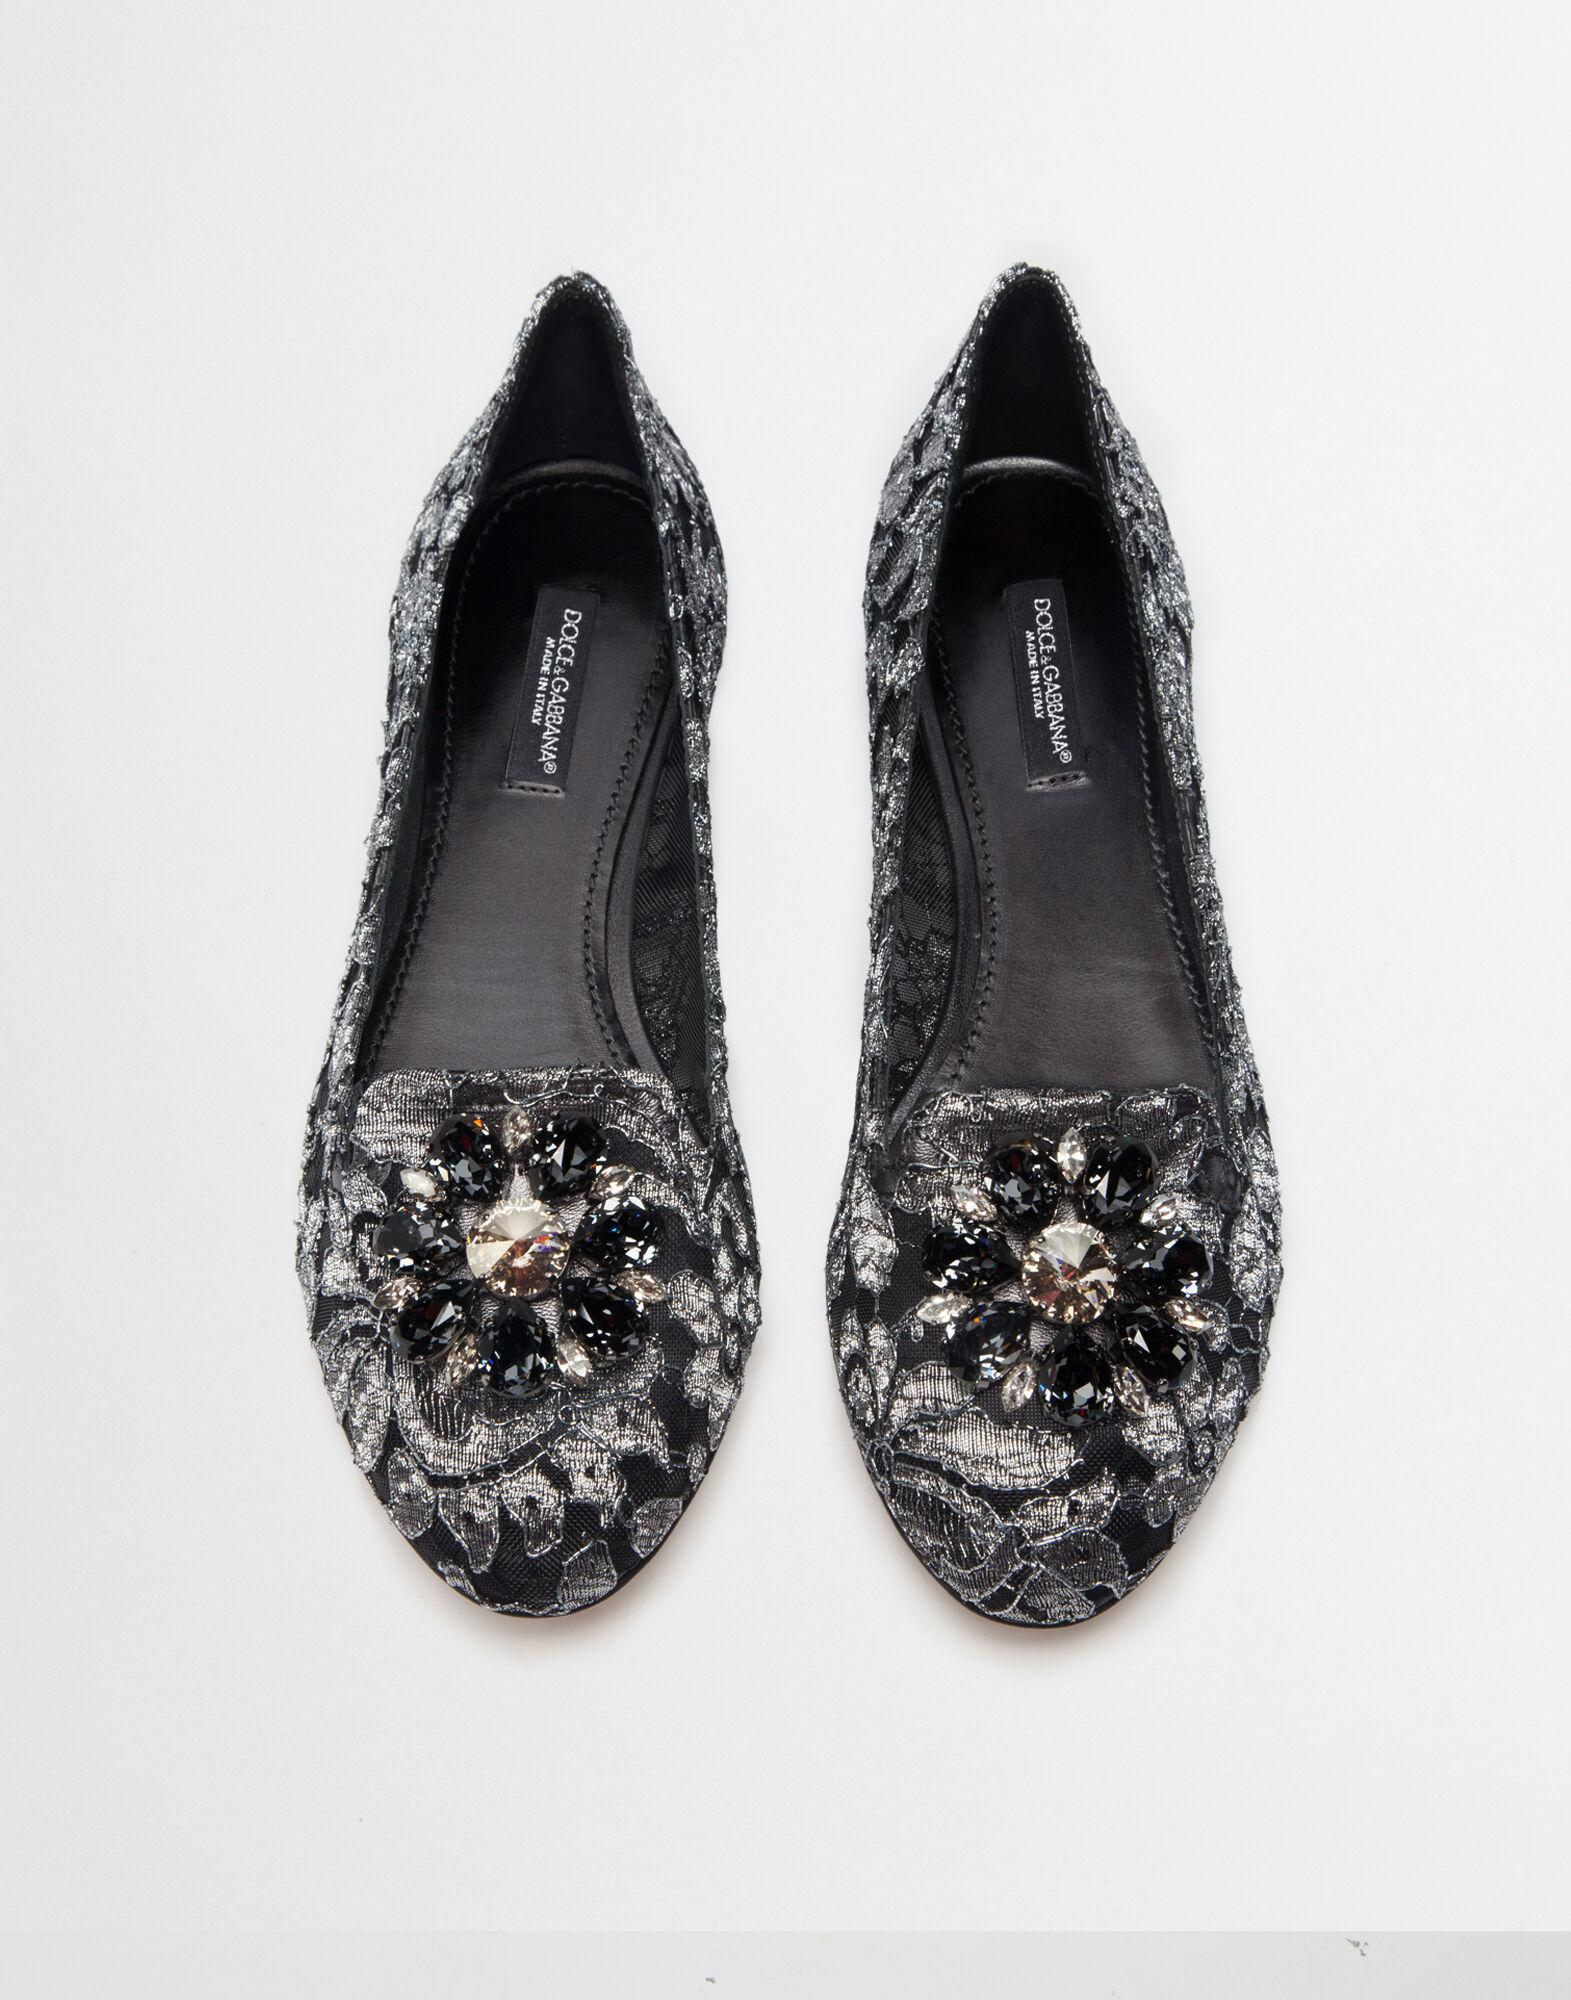 Slipper in Taormina lurex lace with crystals 1